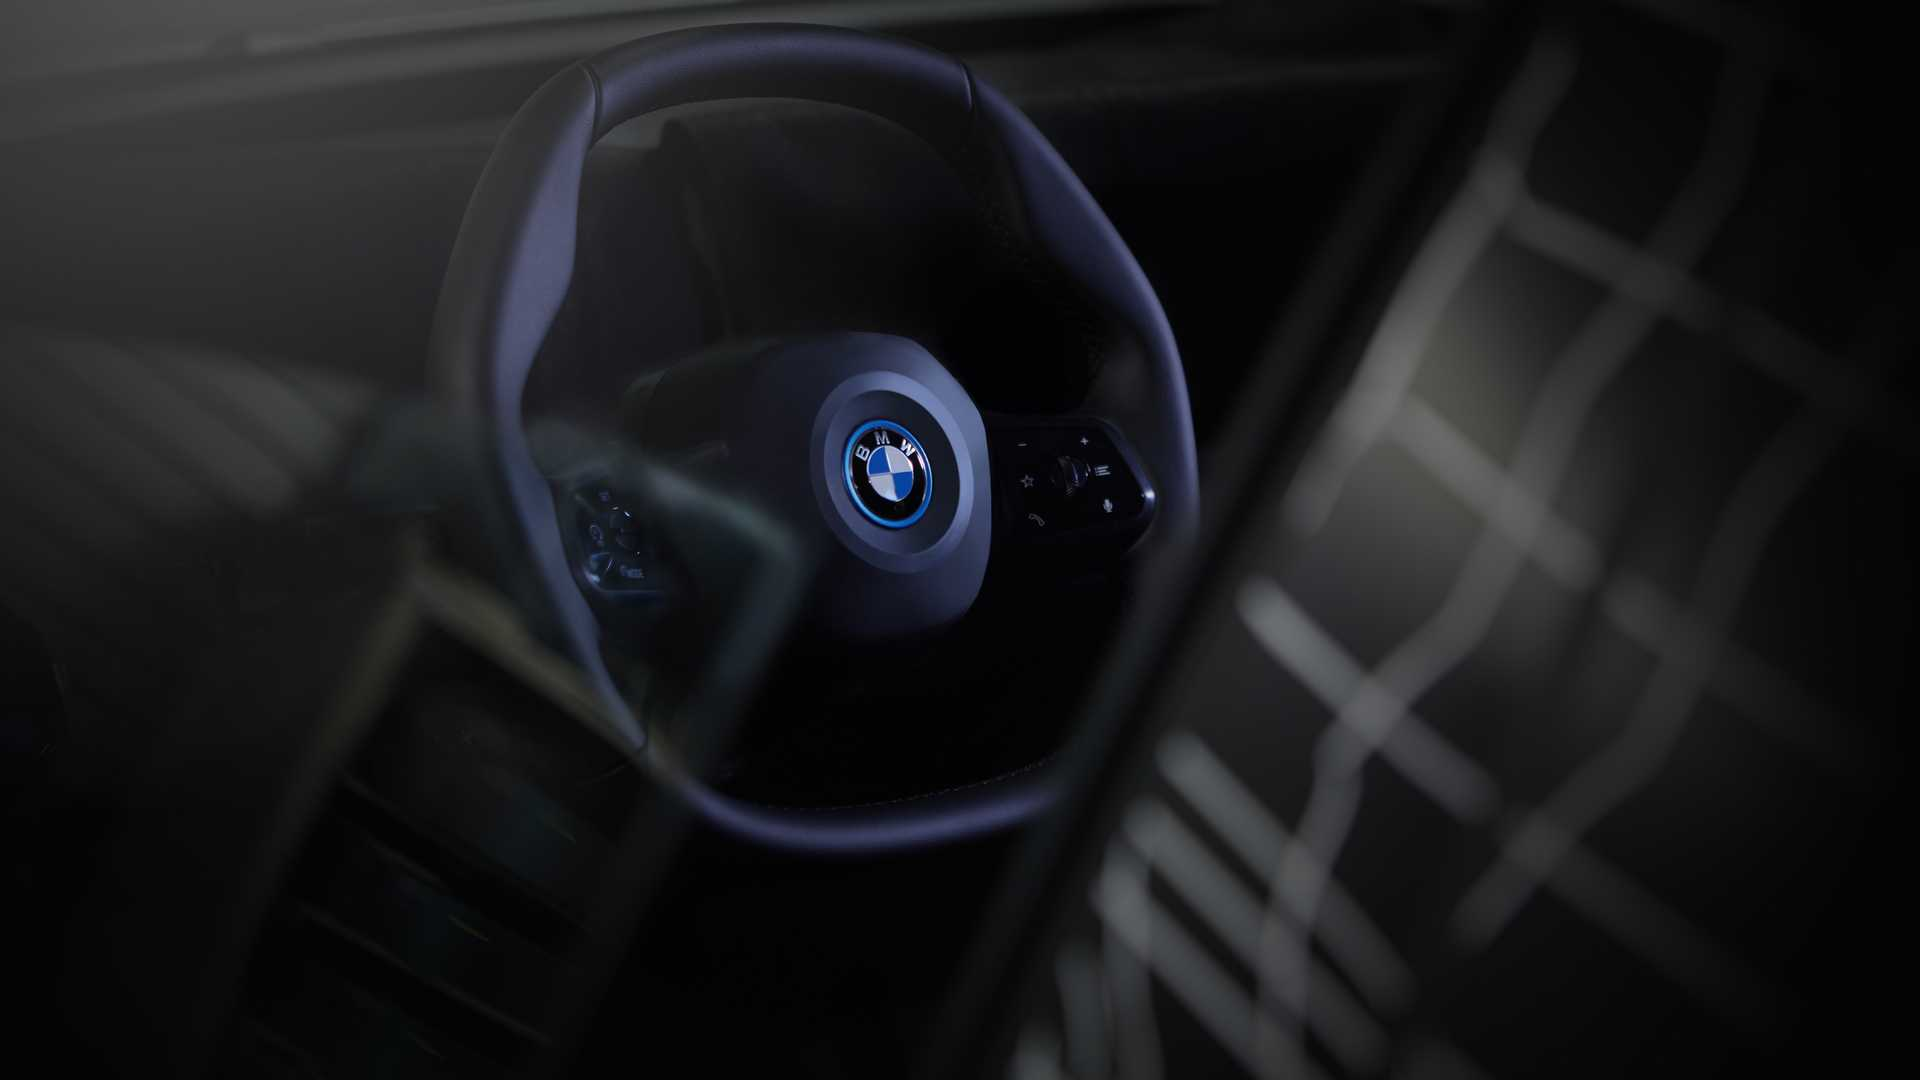 BMW has deigned us worthy of seeing another pic of its upcoming all-electric crossover SUV, the iNext. The image focuses on the car's originally shaped steering wheel. According to the company, the hexagonal wheel ensures more legroom for the driver while also improving dashboard visibility.